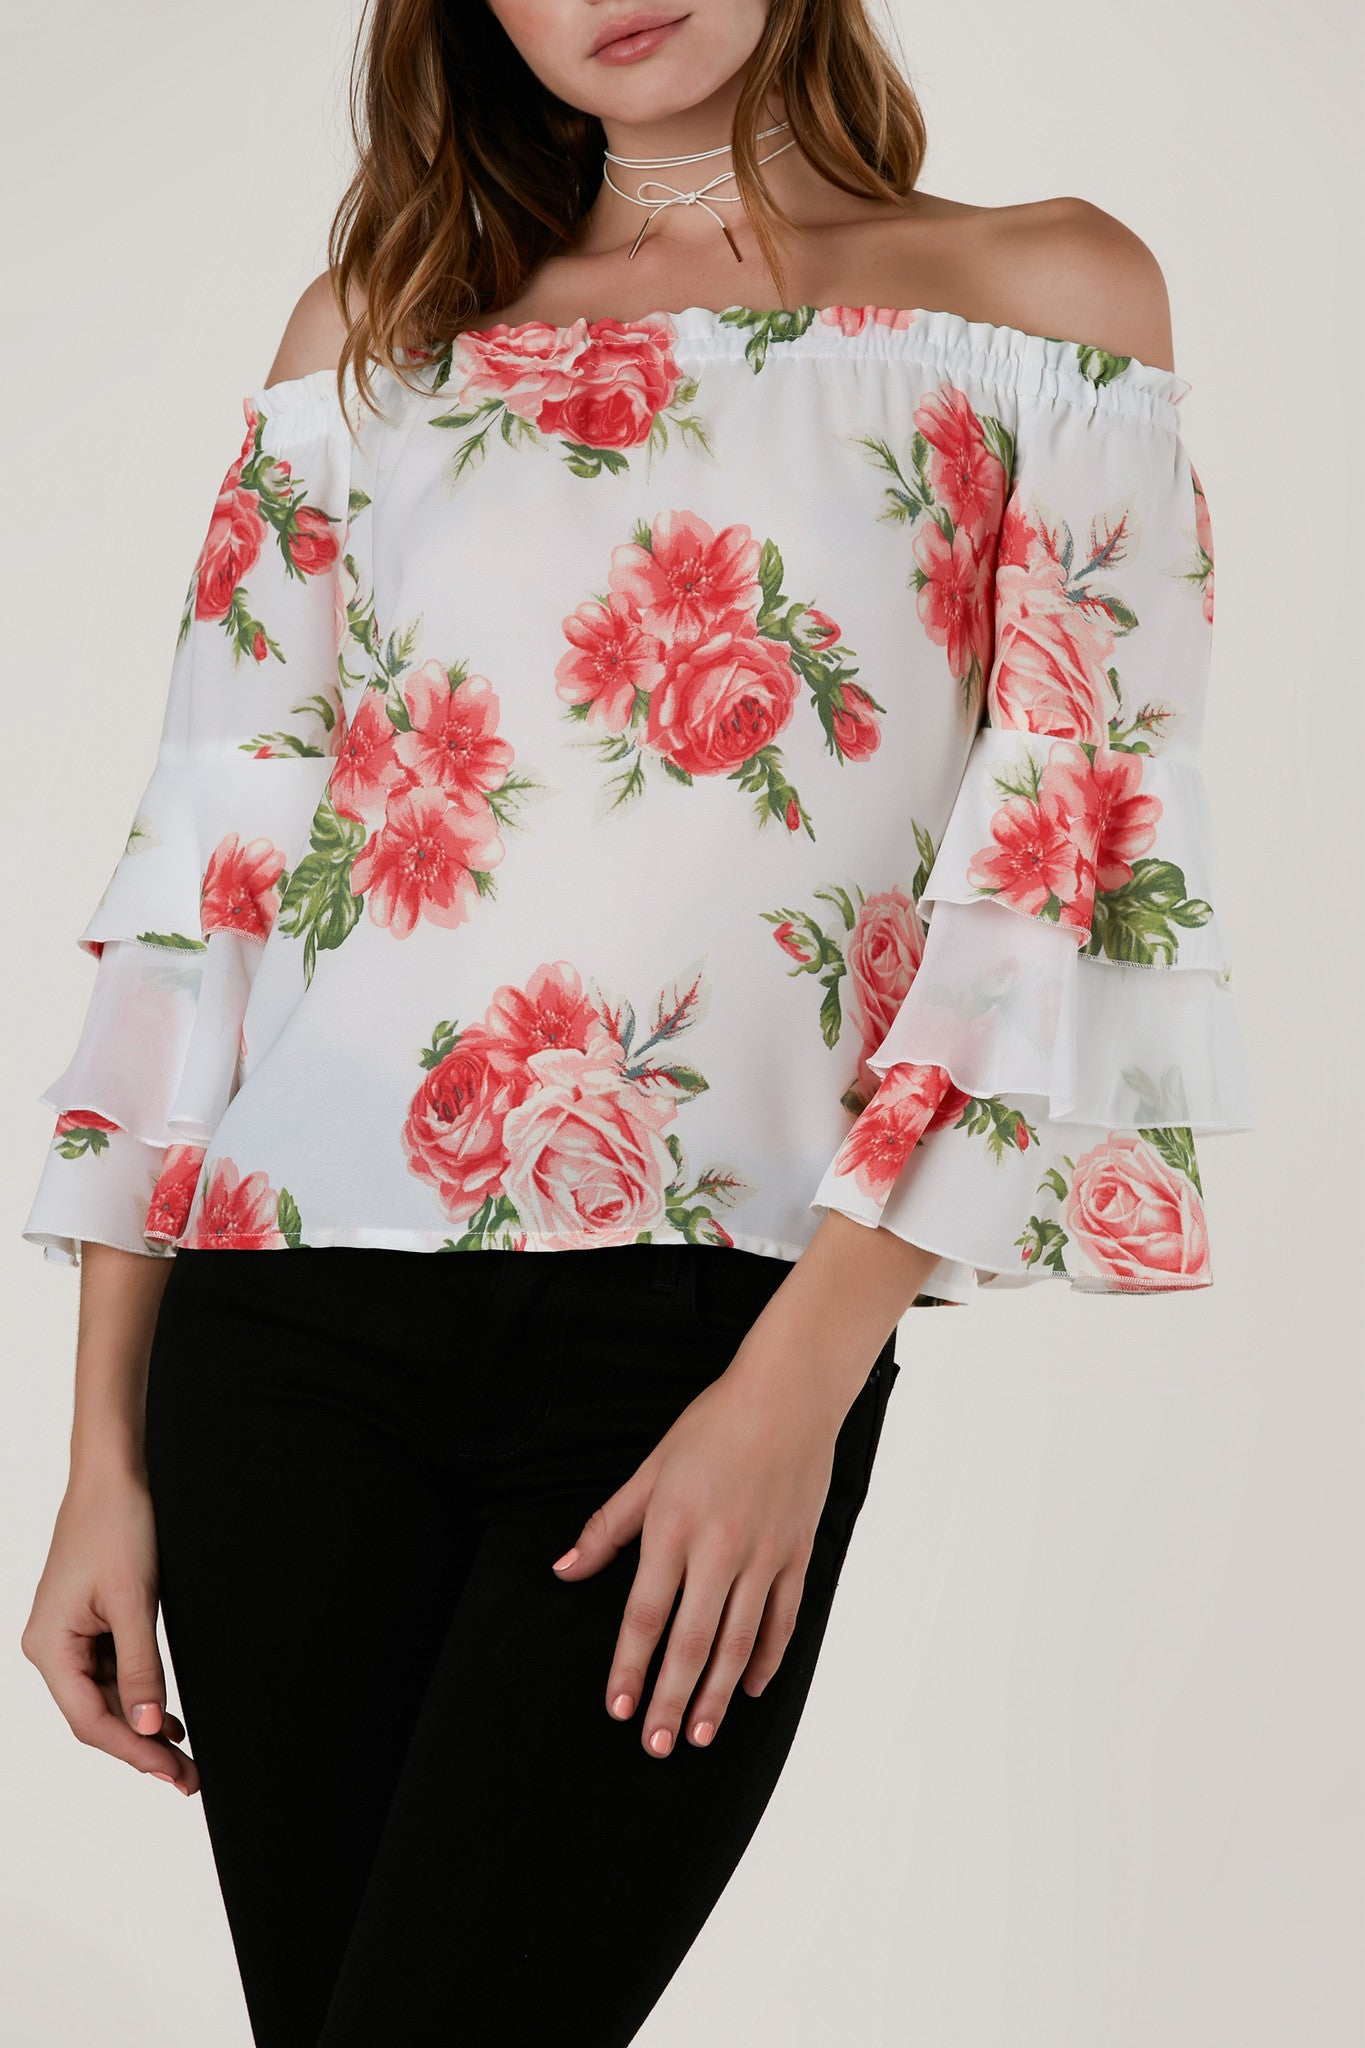 Lightweight off shoulder top with elasticized neckline for comfortable fit. Tiered bell sleeves with floral print throughout.